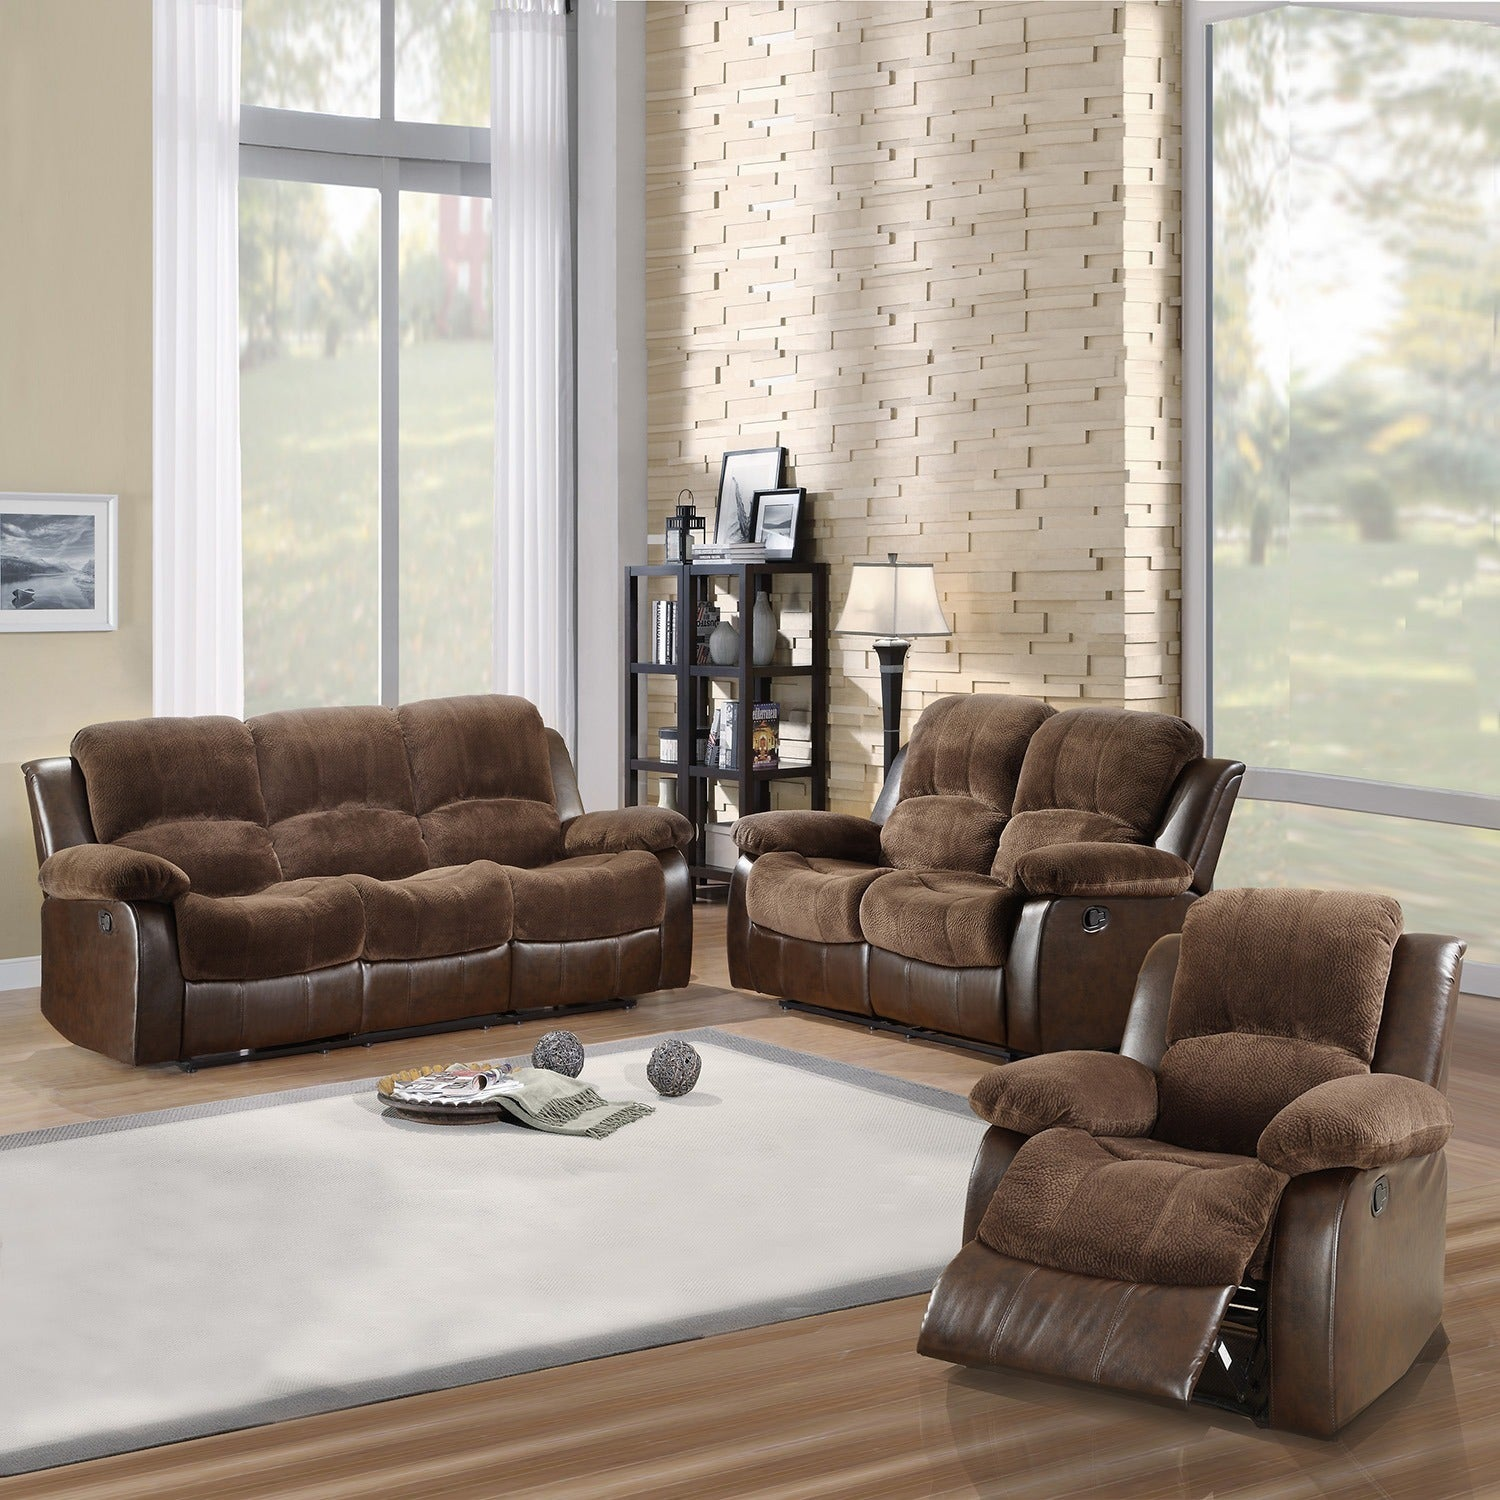 Tribecca home coleford 3 piece tufted transitional for 8 piece living room furniture